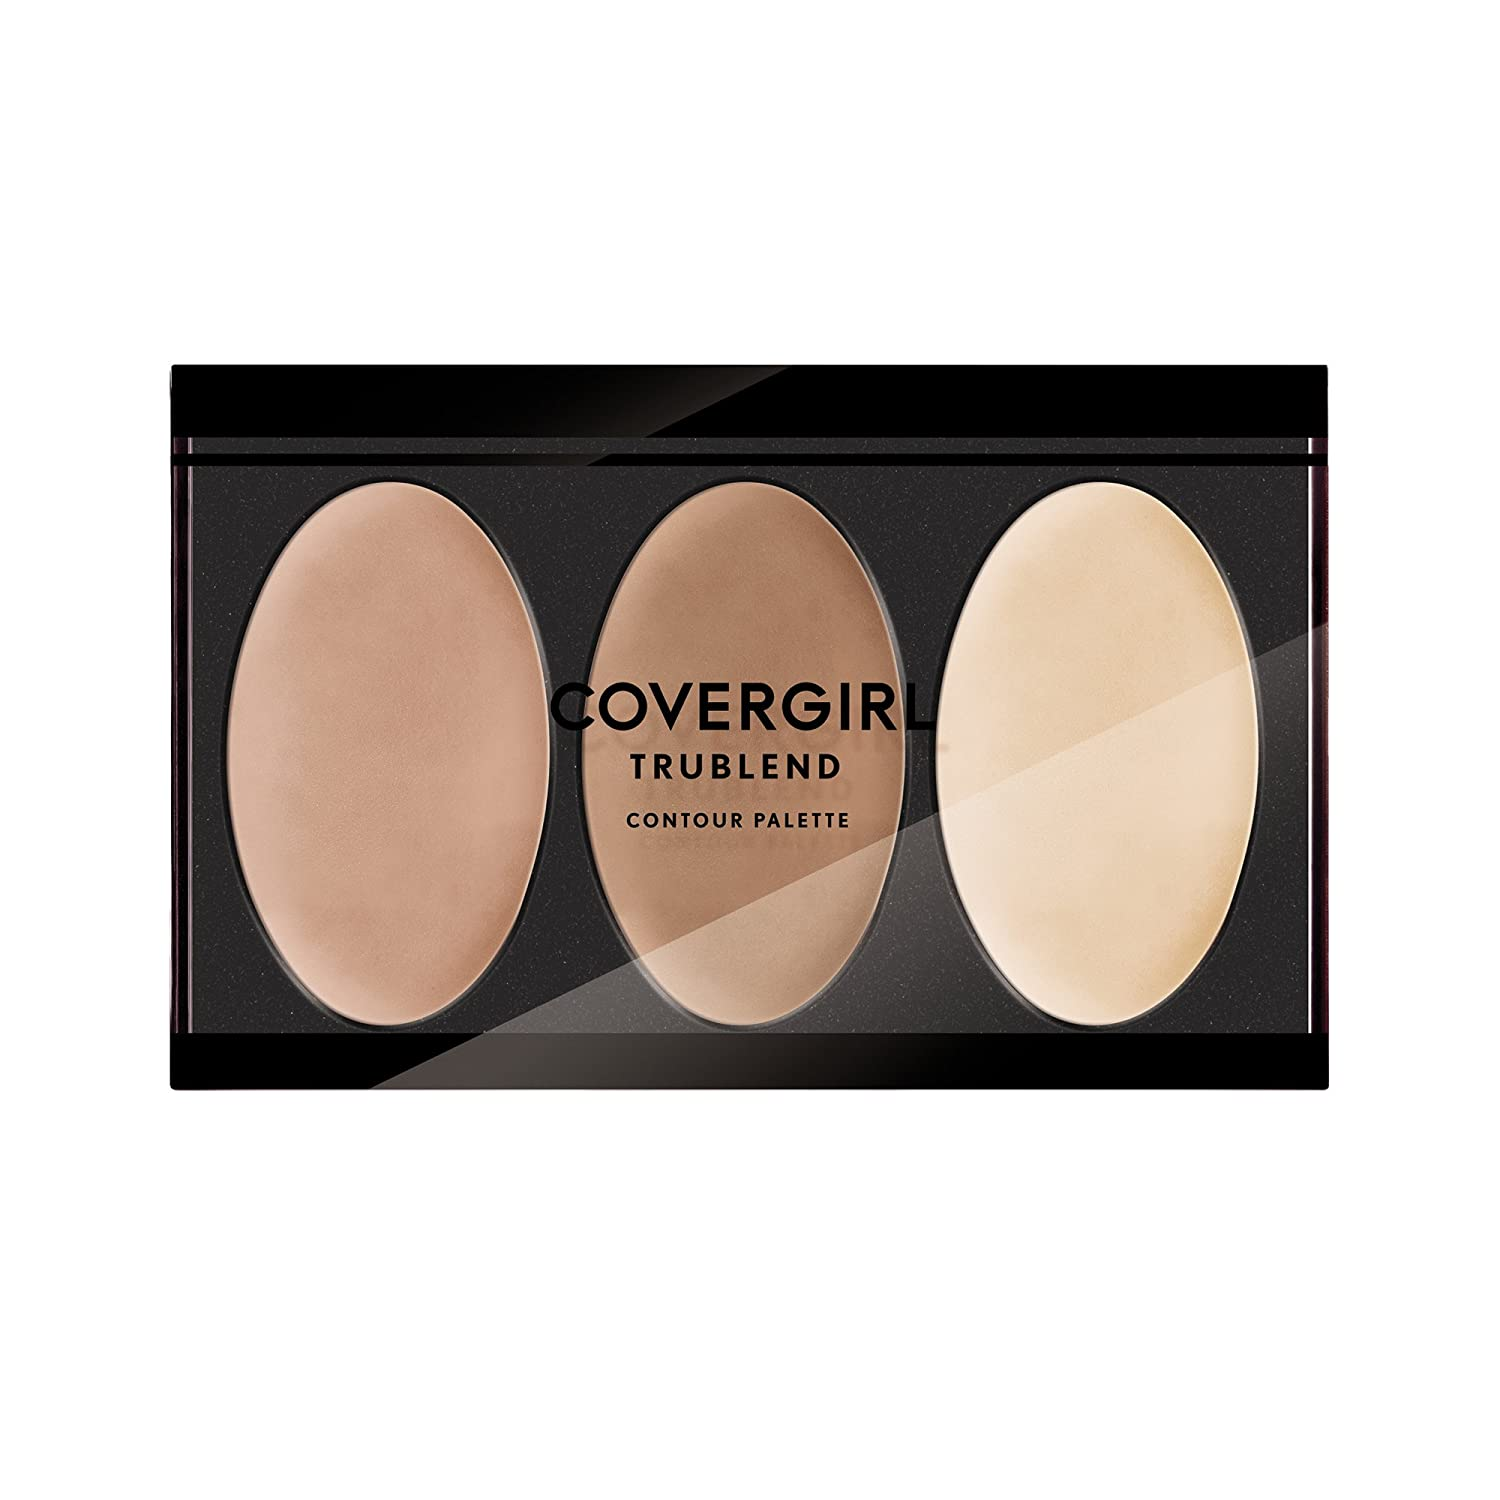 Covergirl Trublend Contour Palette Light 0.28 Oz, 0.161 Pound (Packaging May Vary) by Covergirl